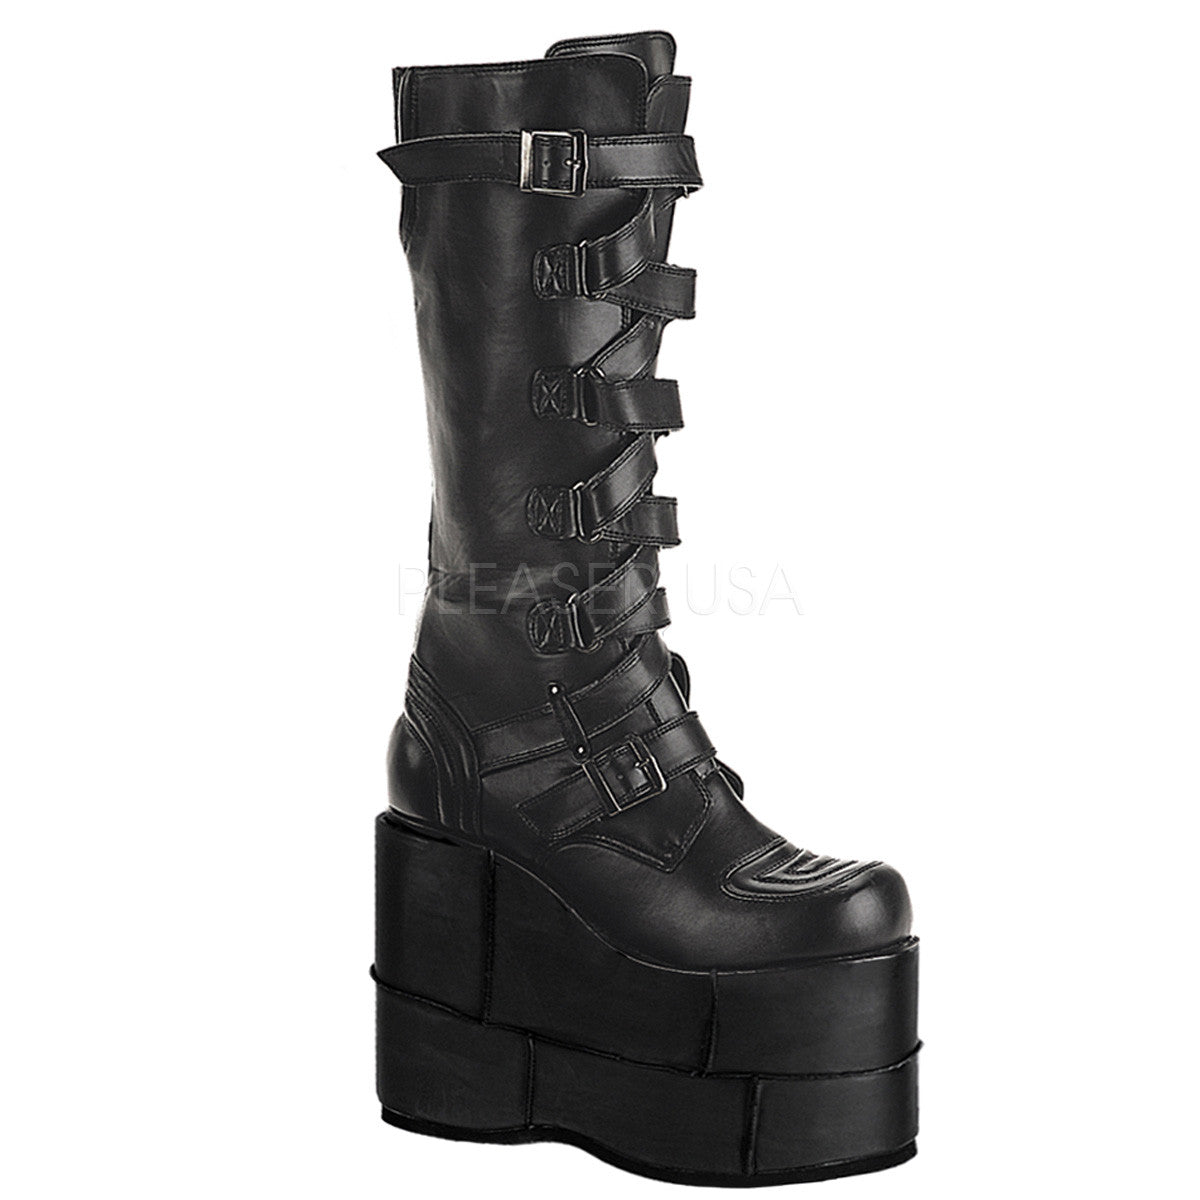 Demonia,DEMONIA STACK-308 Men's Black Pu Vegan Boots - Shoecup.com